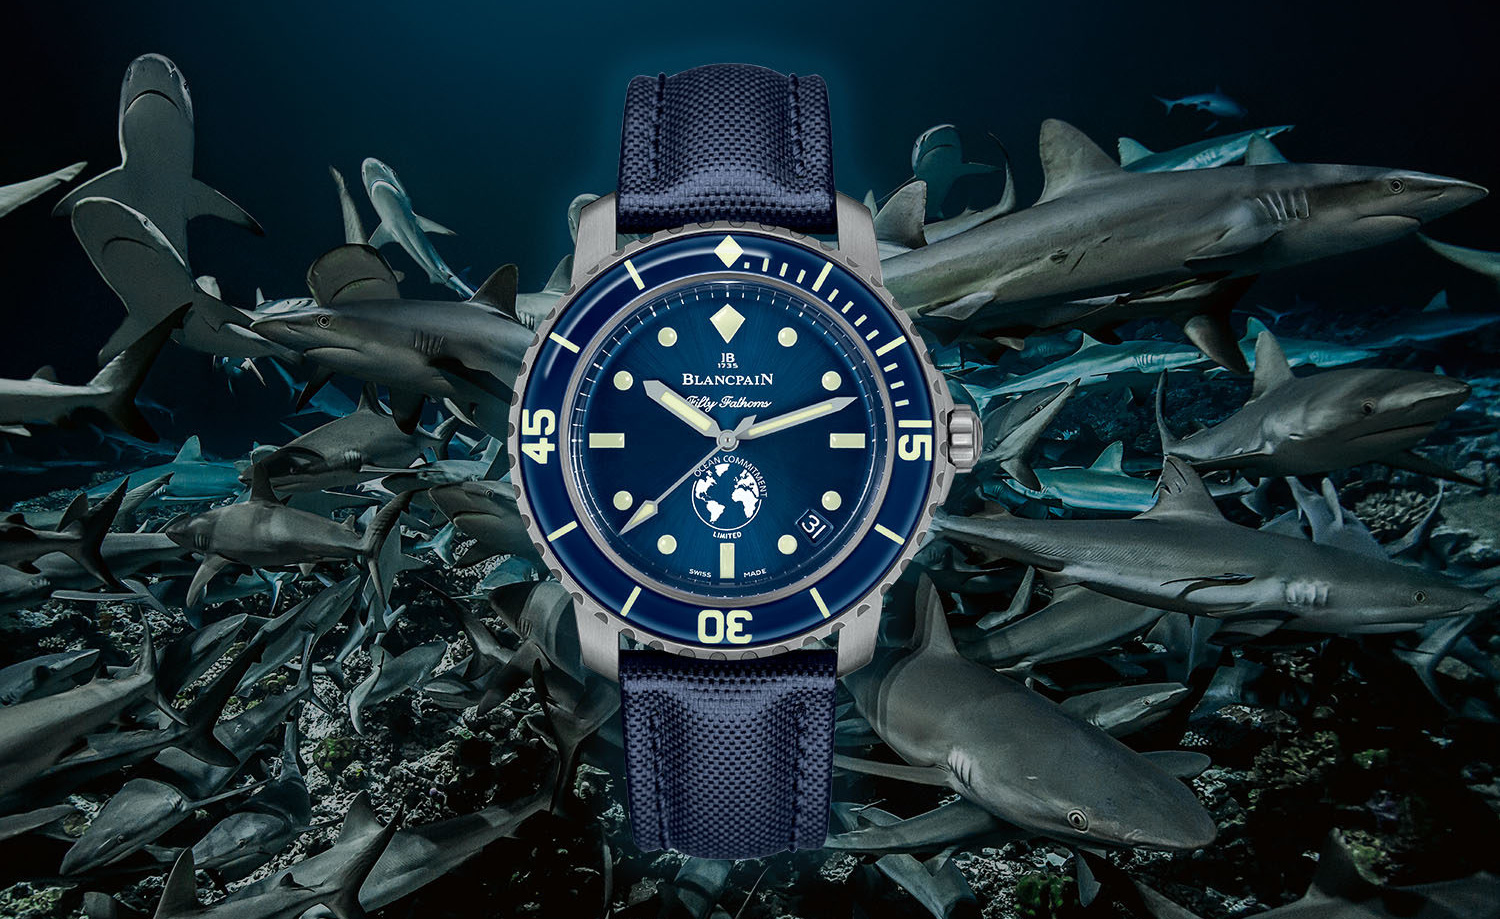 A Sharktastic Guide to Blancpain's Diving Watches